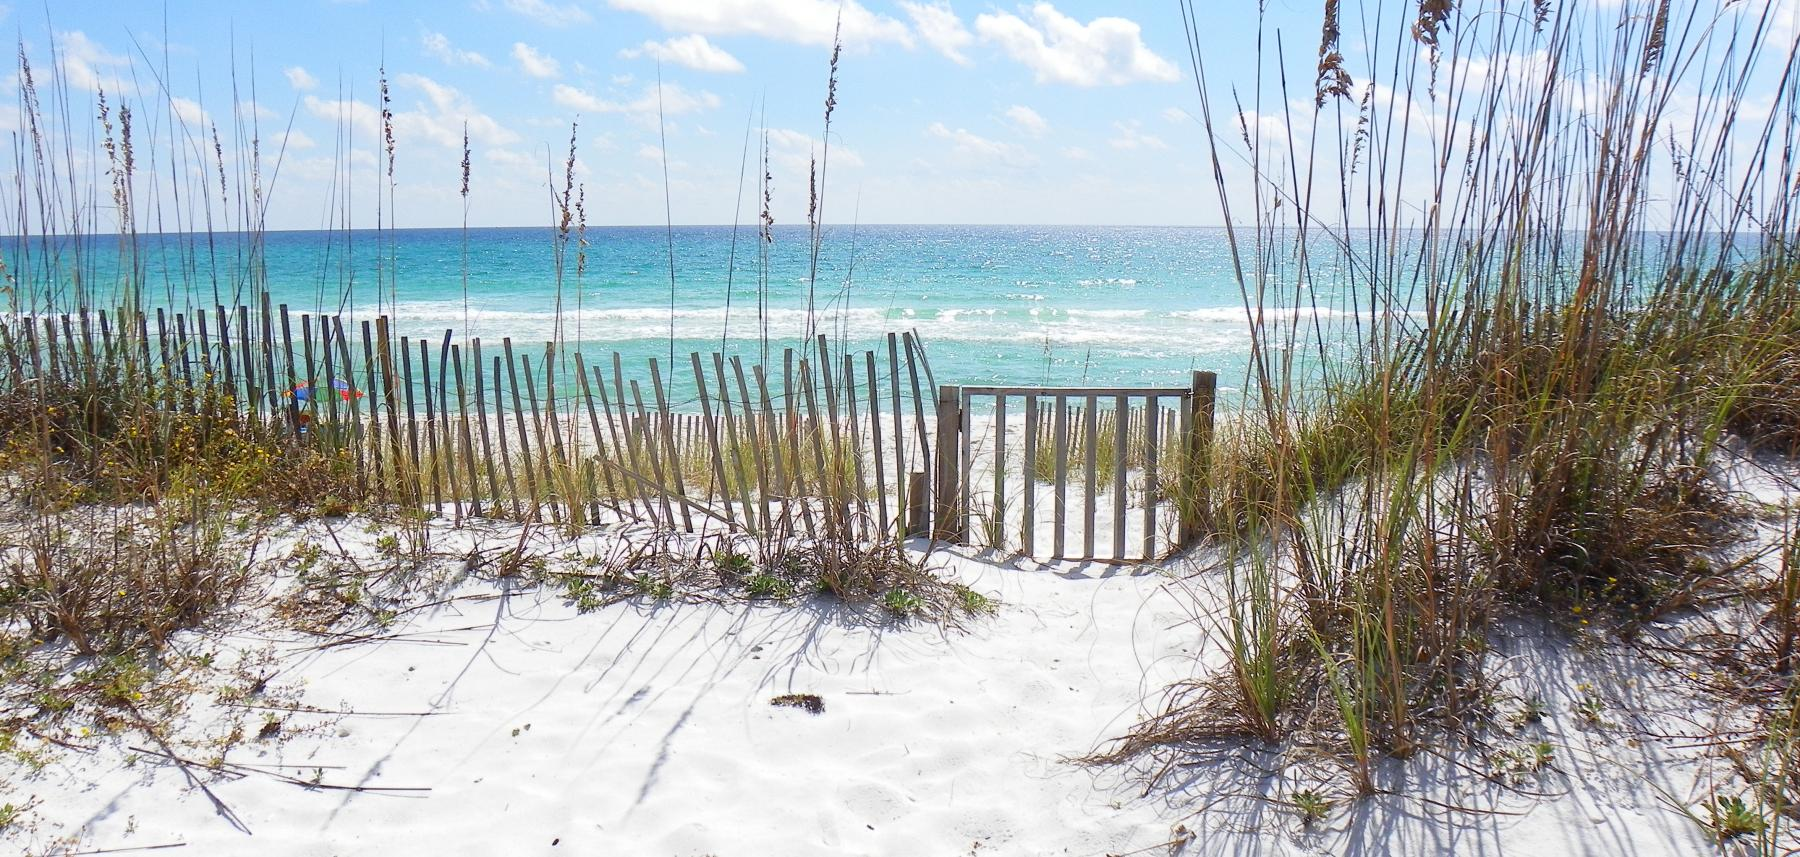 Sandy white beaches and emerald green waters / Vacation Rentals Pensacola Beach and Navarre Beach